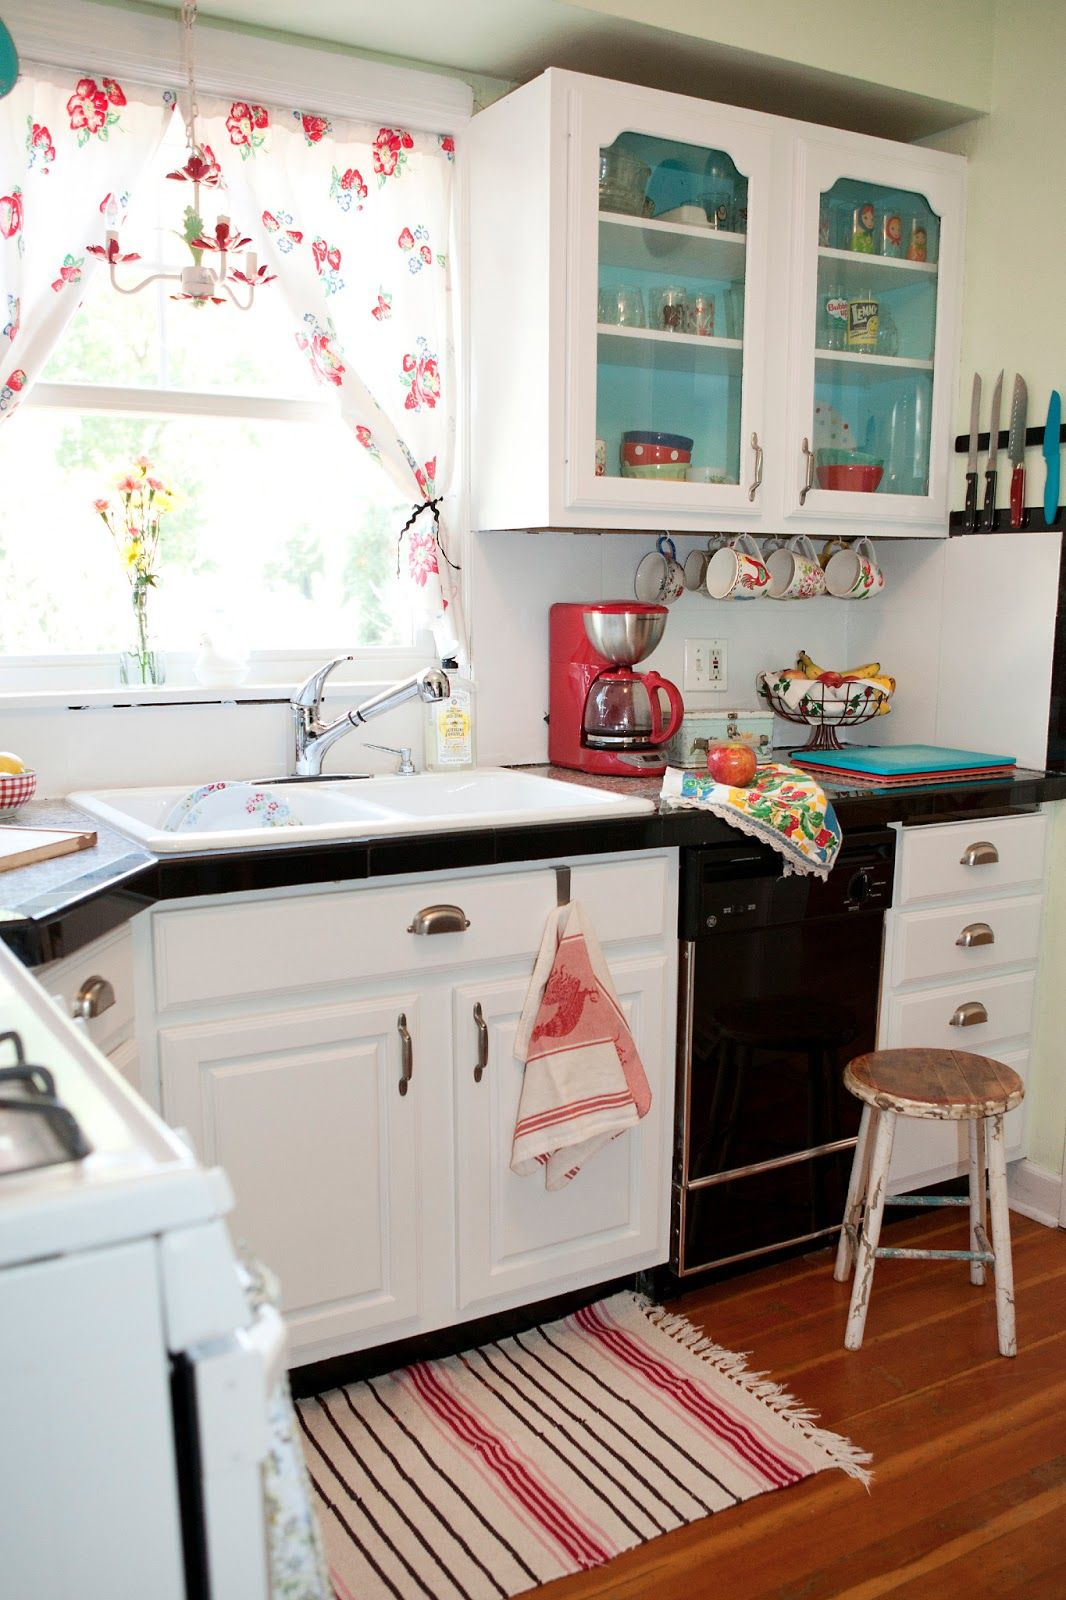 A Sort Of Fairytale Budget Cottage Kitchen CATHY Pinterest